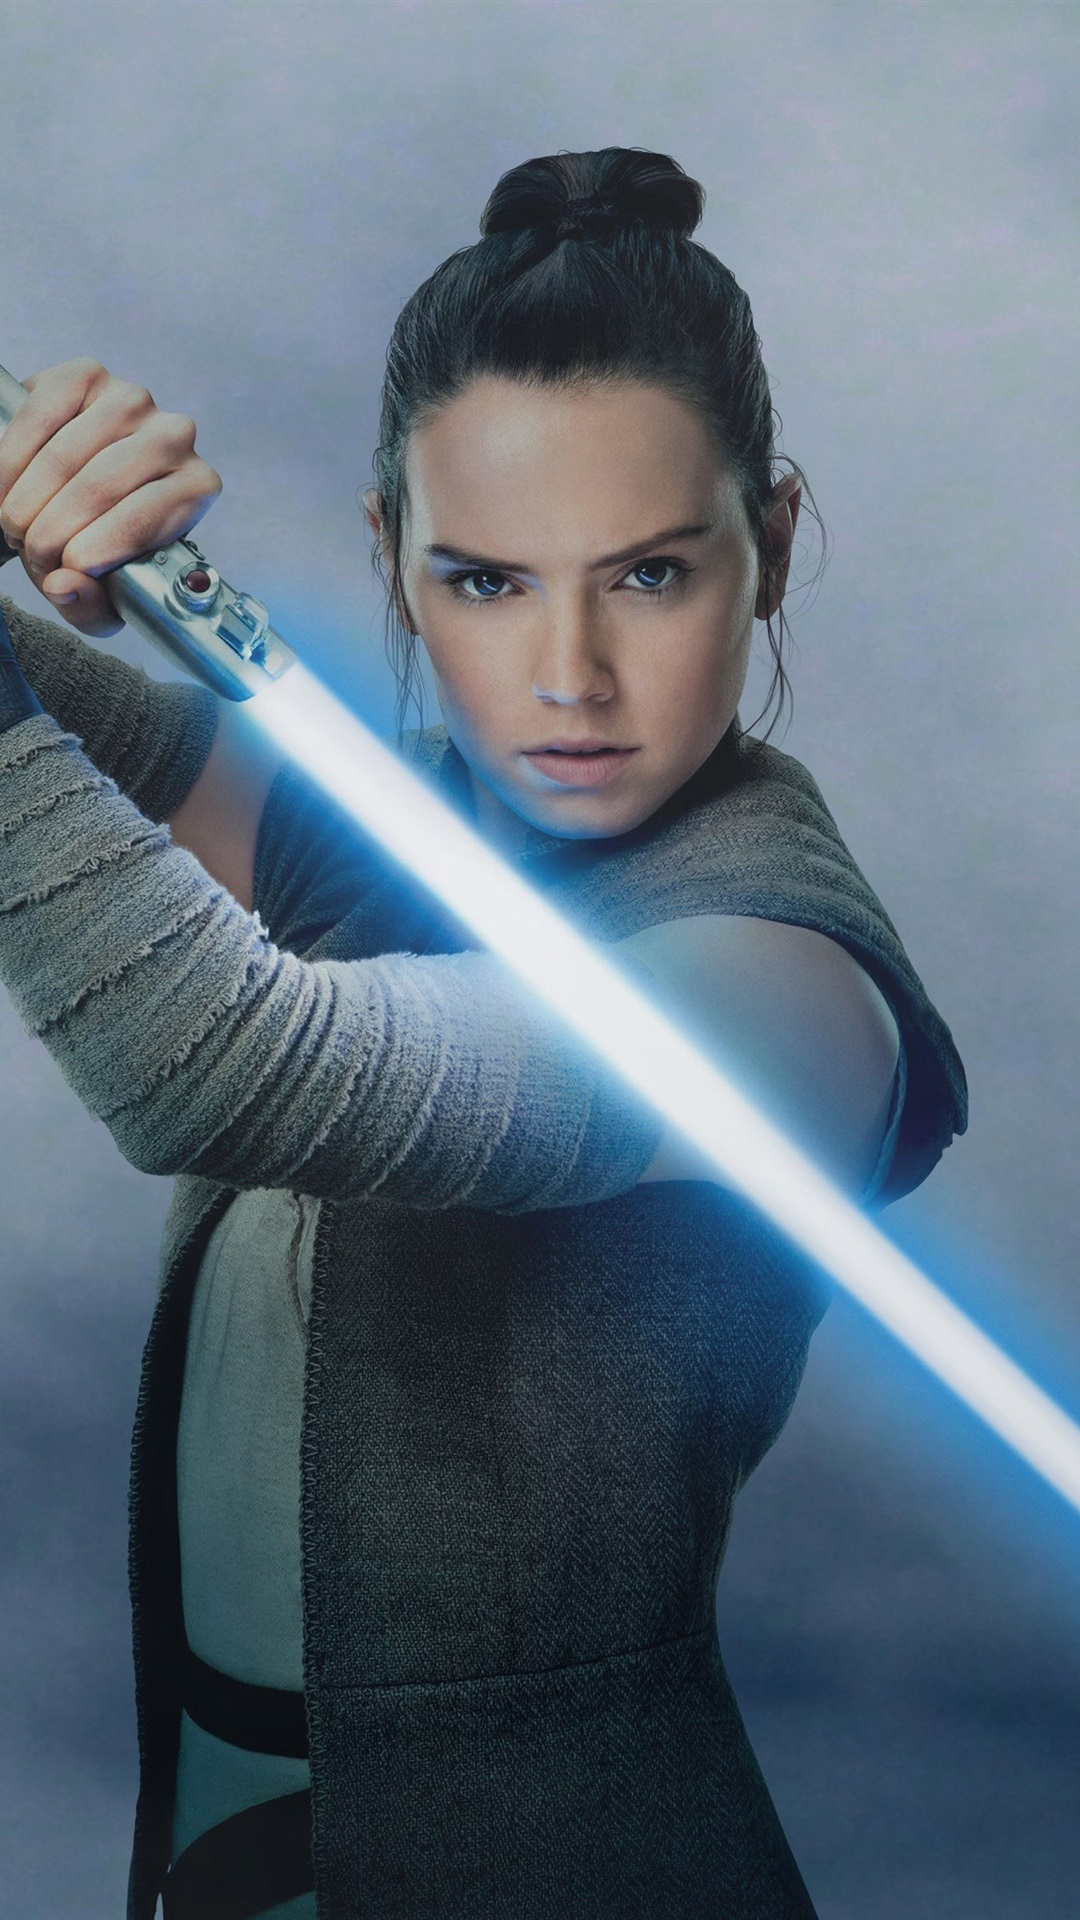 Wallpaper Star Wars The Last Jedi Daisy Ridley Laser Sword 3840x2160 Uhd 4k Picture Image